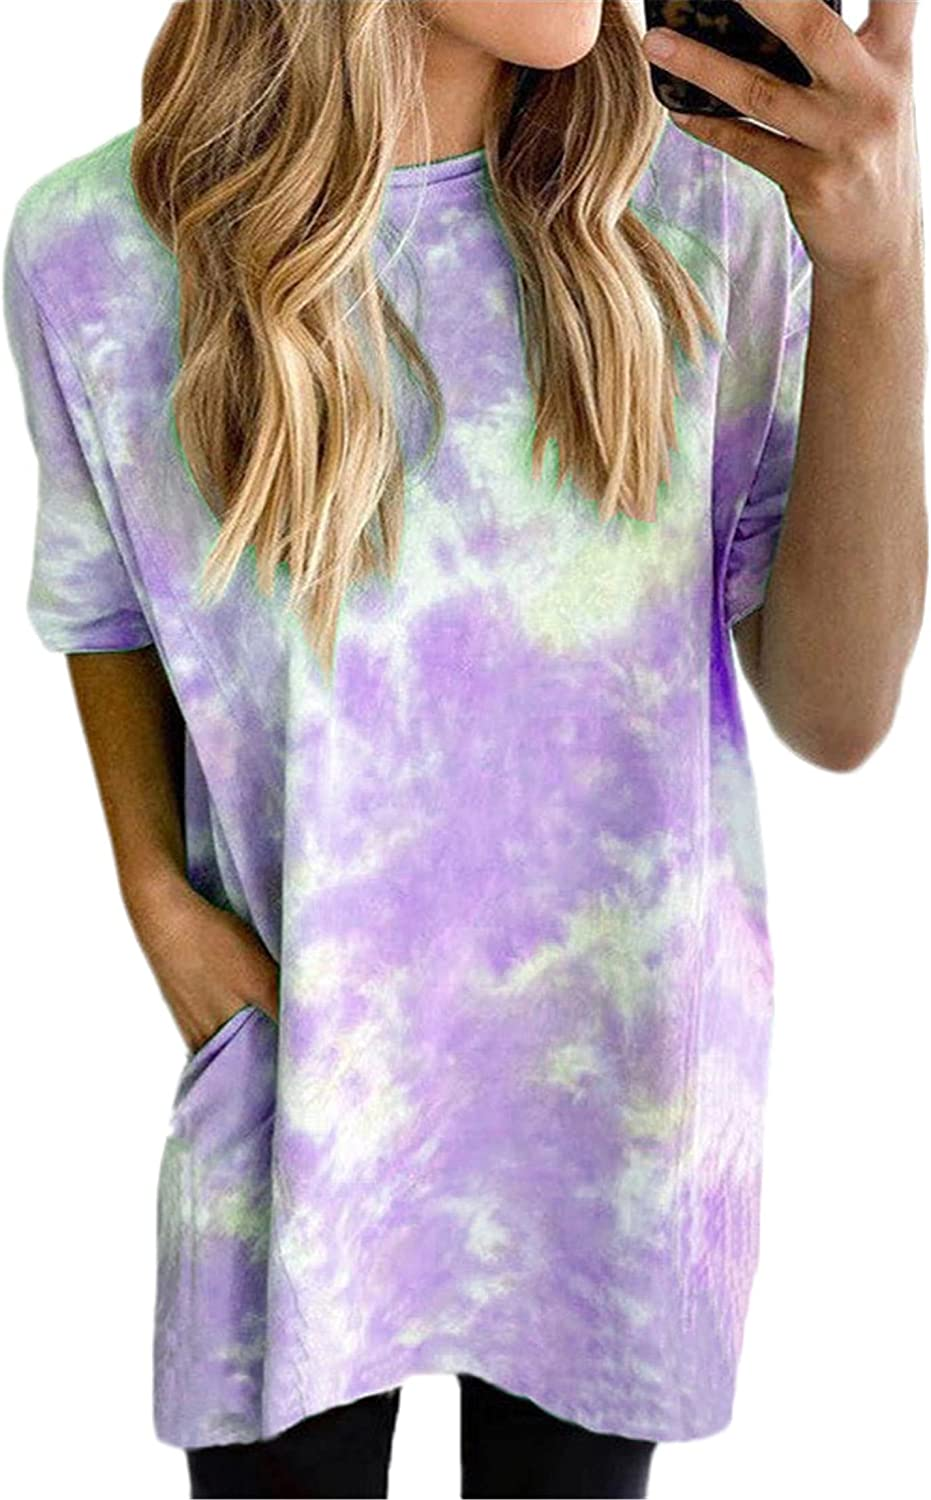 Andongnywell Fixed price Sale price for sale Women's Gradient Print Short Crewneck Sleeve Shirt